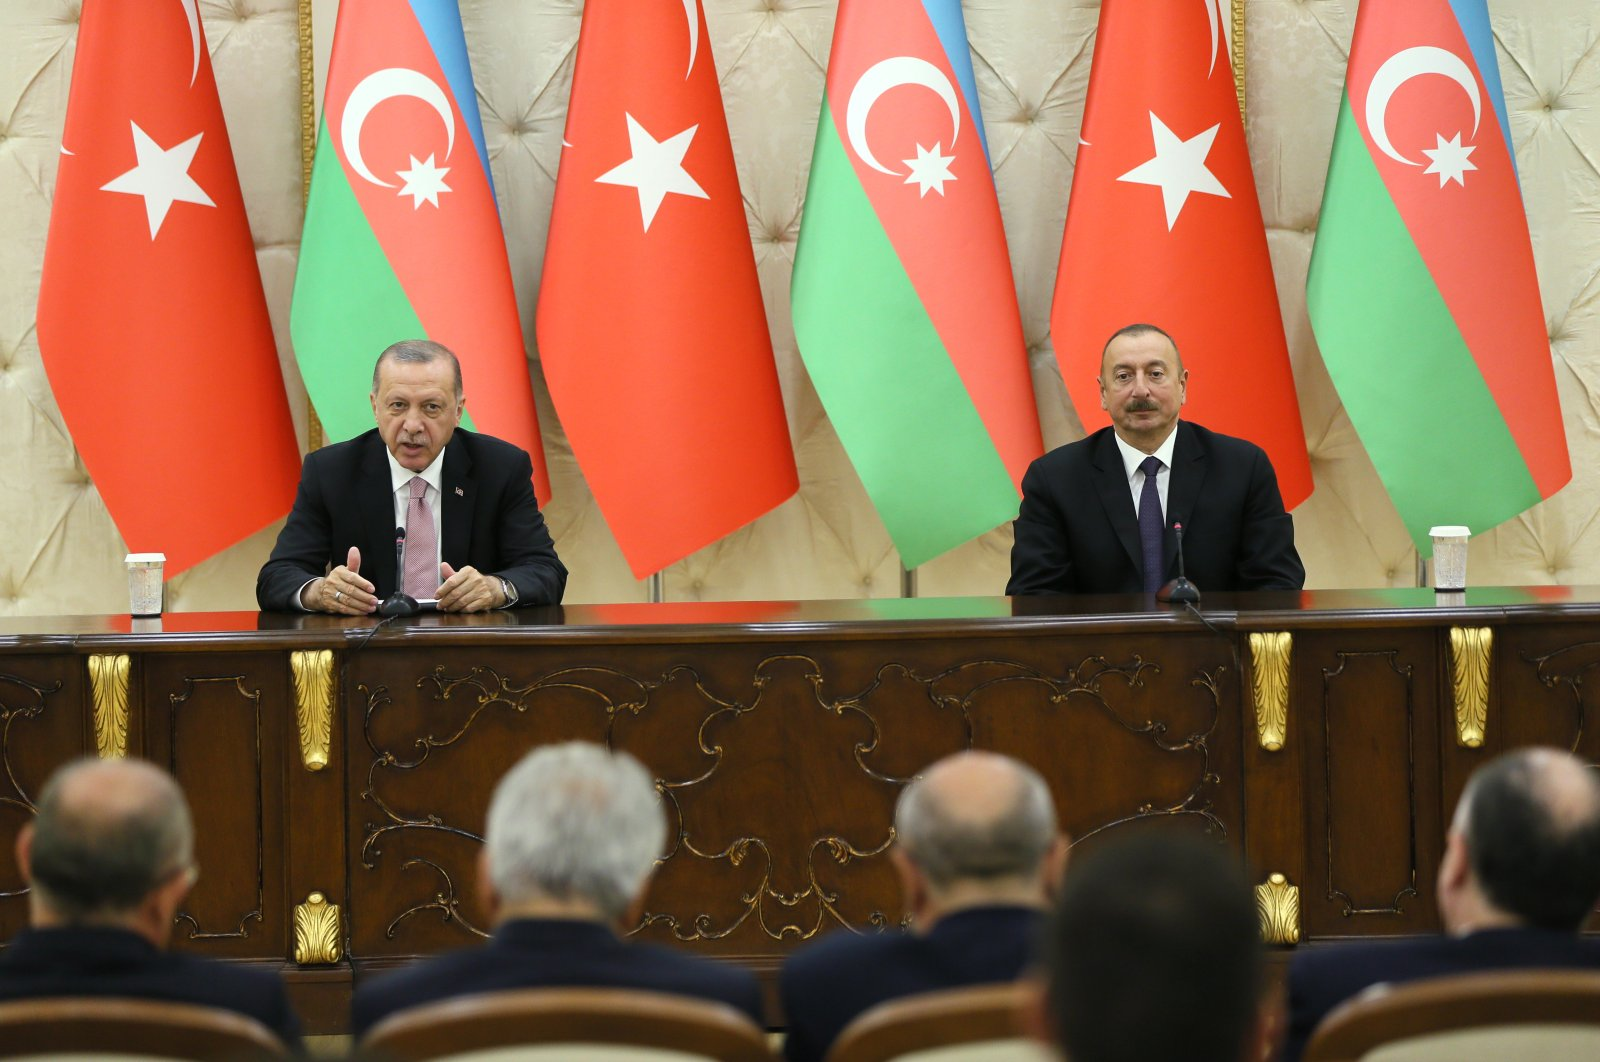 President Recep Tayyip Erdoğan attends joint news conference with Azeri counterpart İlham Aliyev in Baku on July 11, 2018 (AA File Photo)